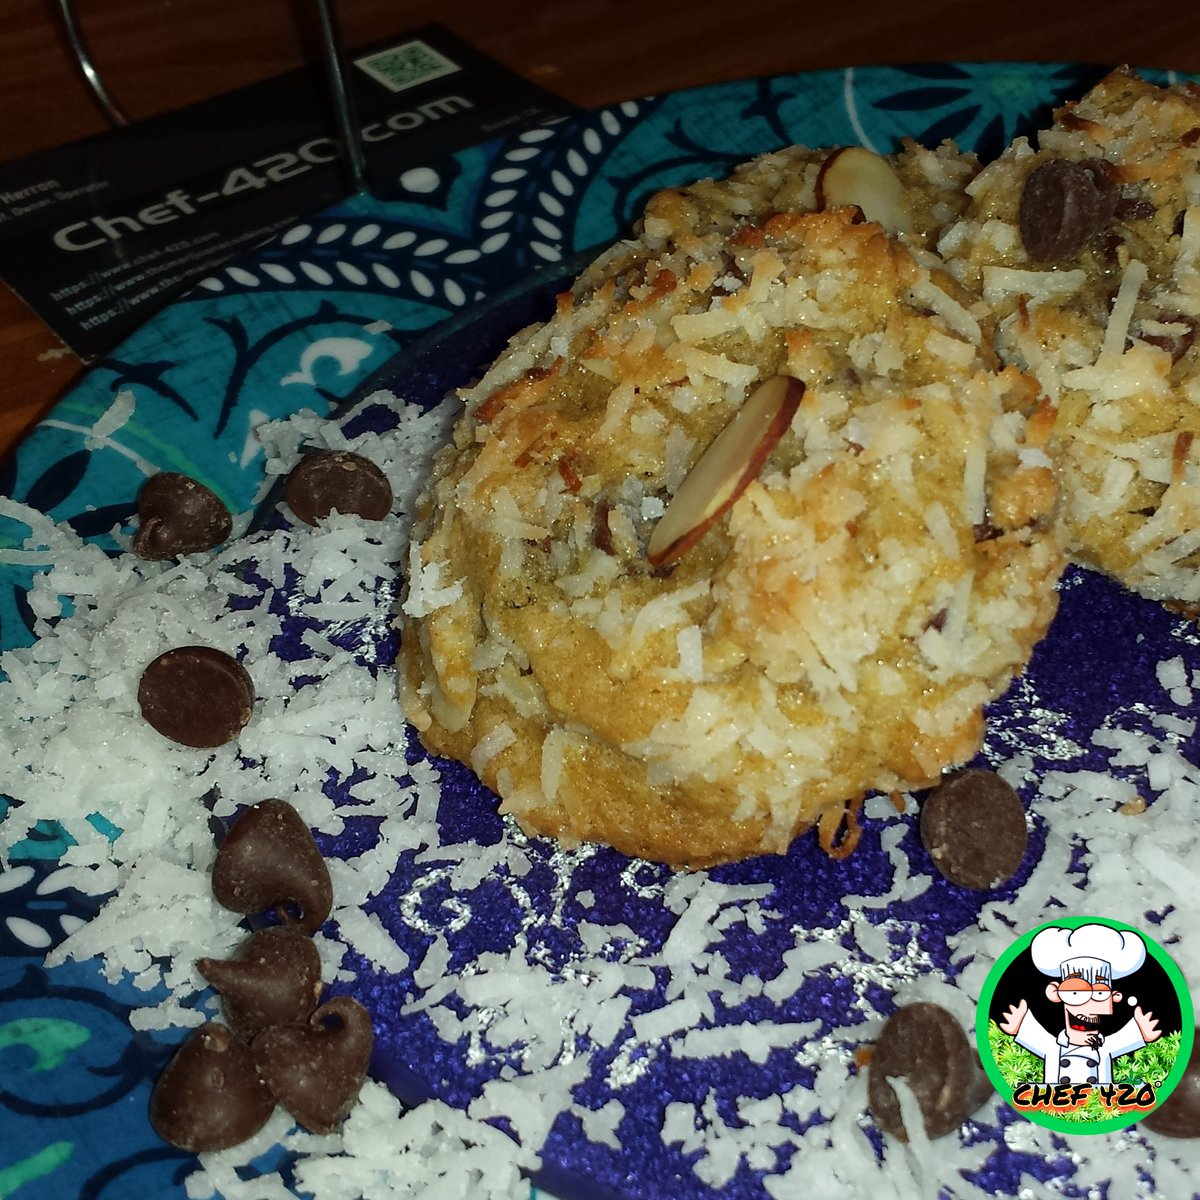 By chef 420 Coconut Almond Joy Cookies are the perfect blend of coconut, semi sweet chocolate and sliced almonds. Quick, Easy Recipe You know you want some.  https://t.co/0nKyJsCzgo  #Chef420 #Edibles #CookingWithCannabis #CannabisChef #CannabisRecipes #InfusedRecipes #420 https://t.co/h5fvZSdhbT